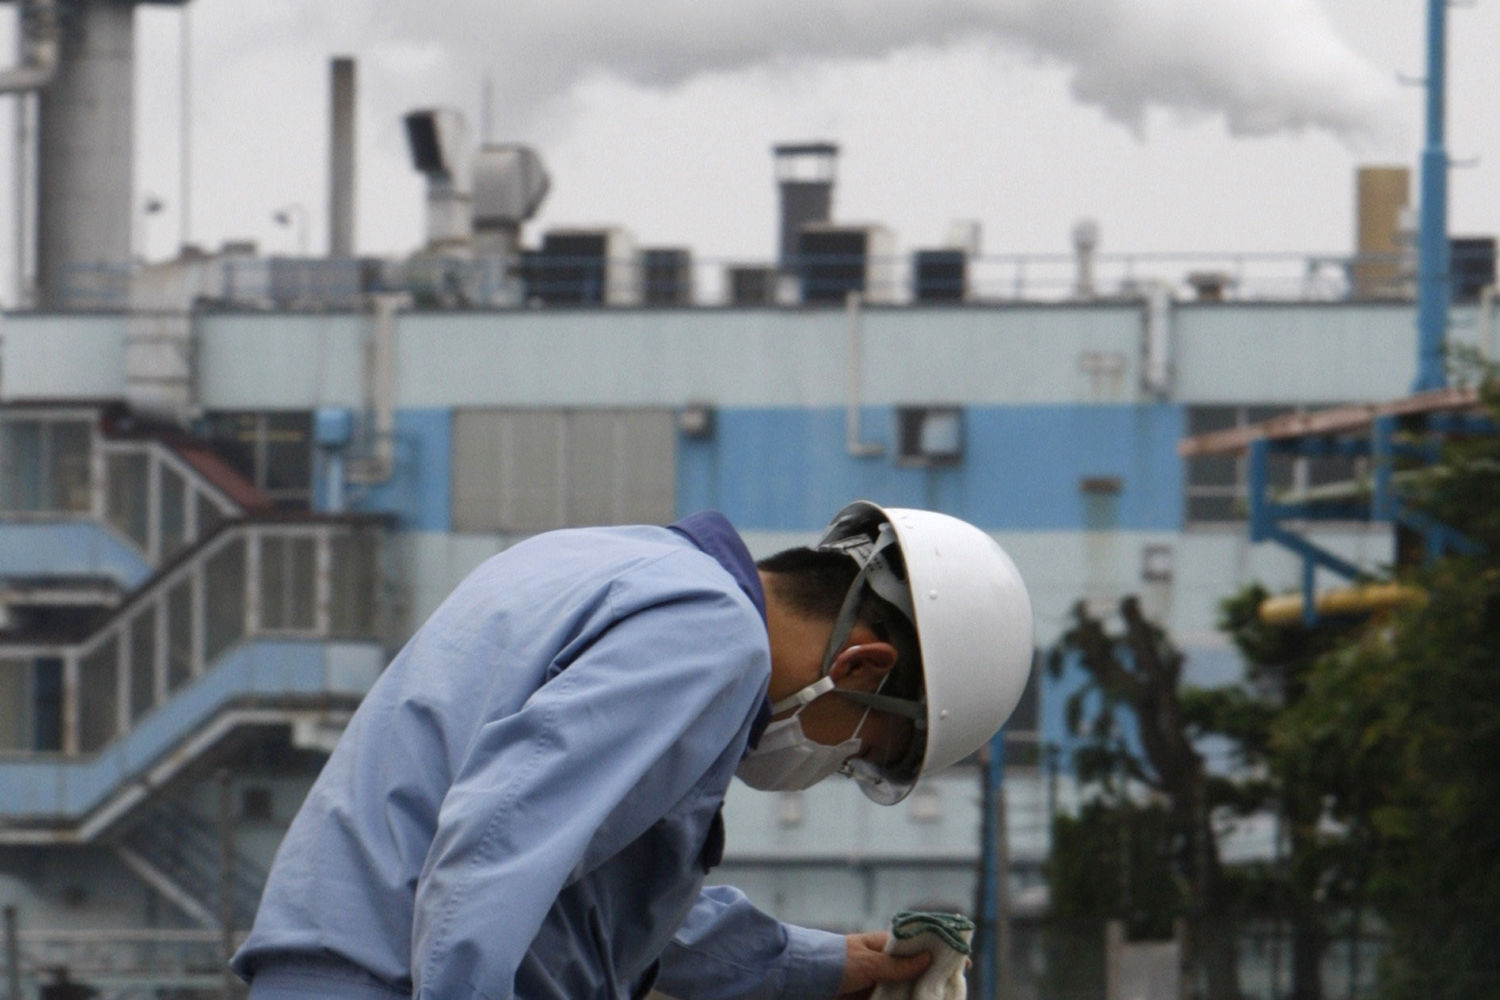 Japan sets itself tougher targets on emissions reduction